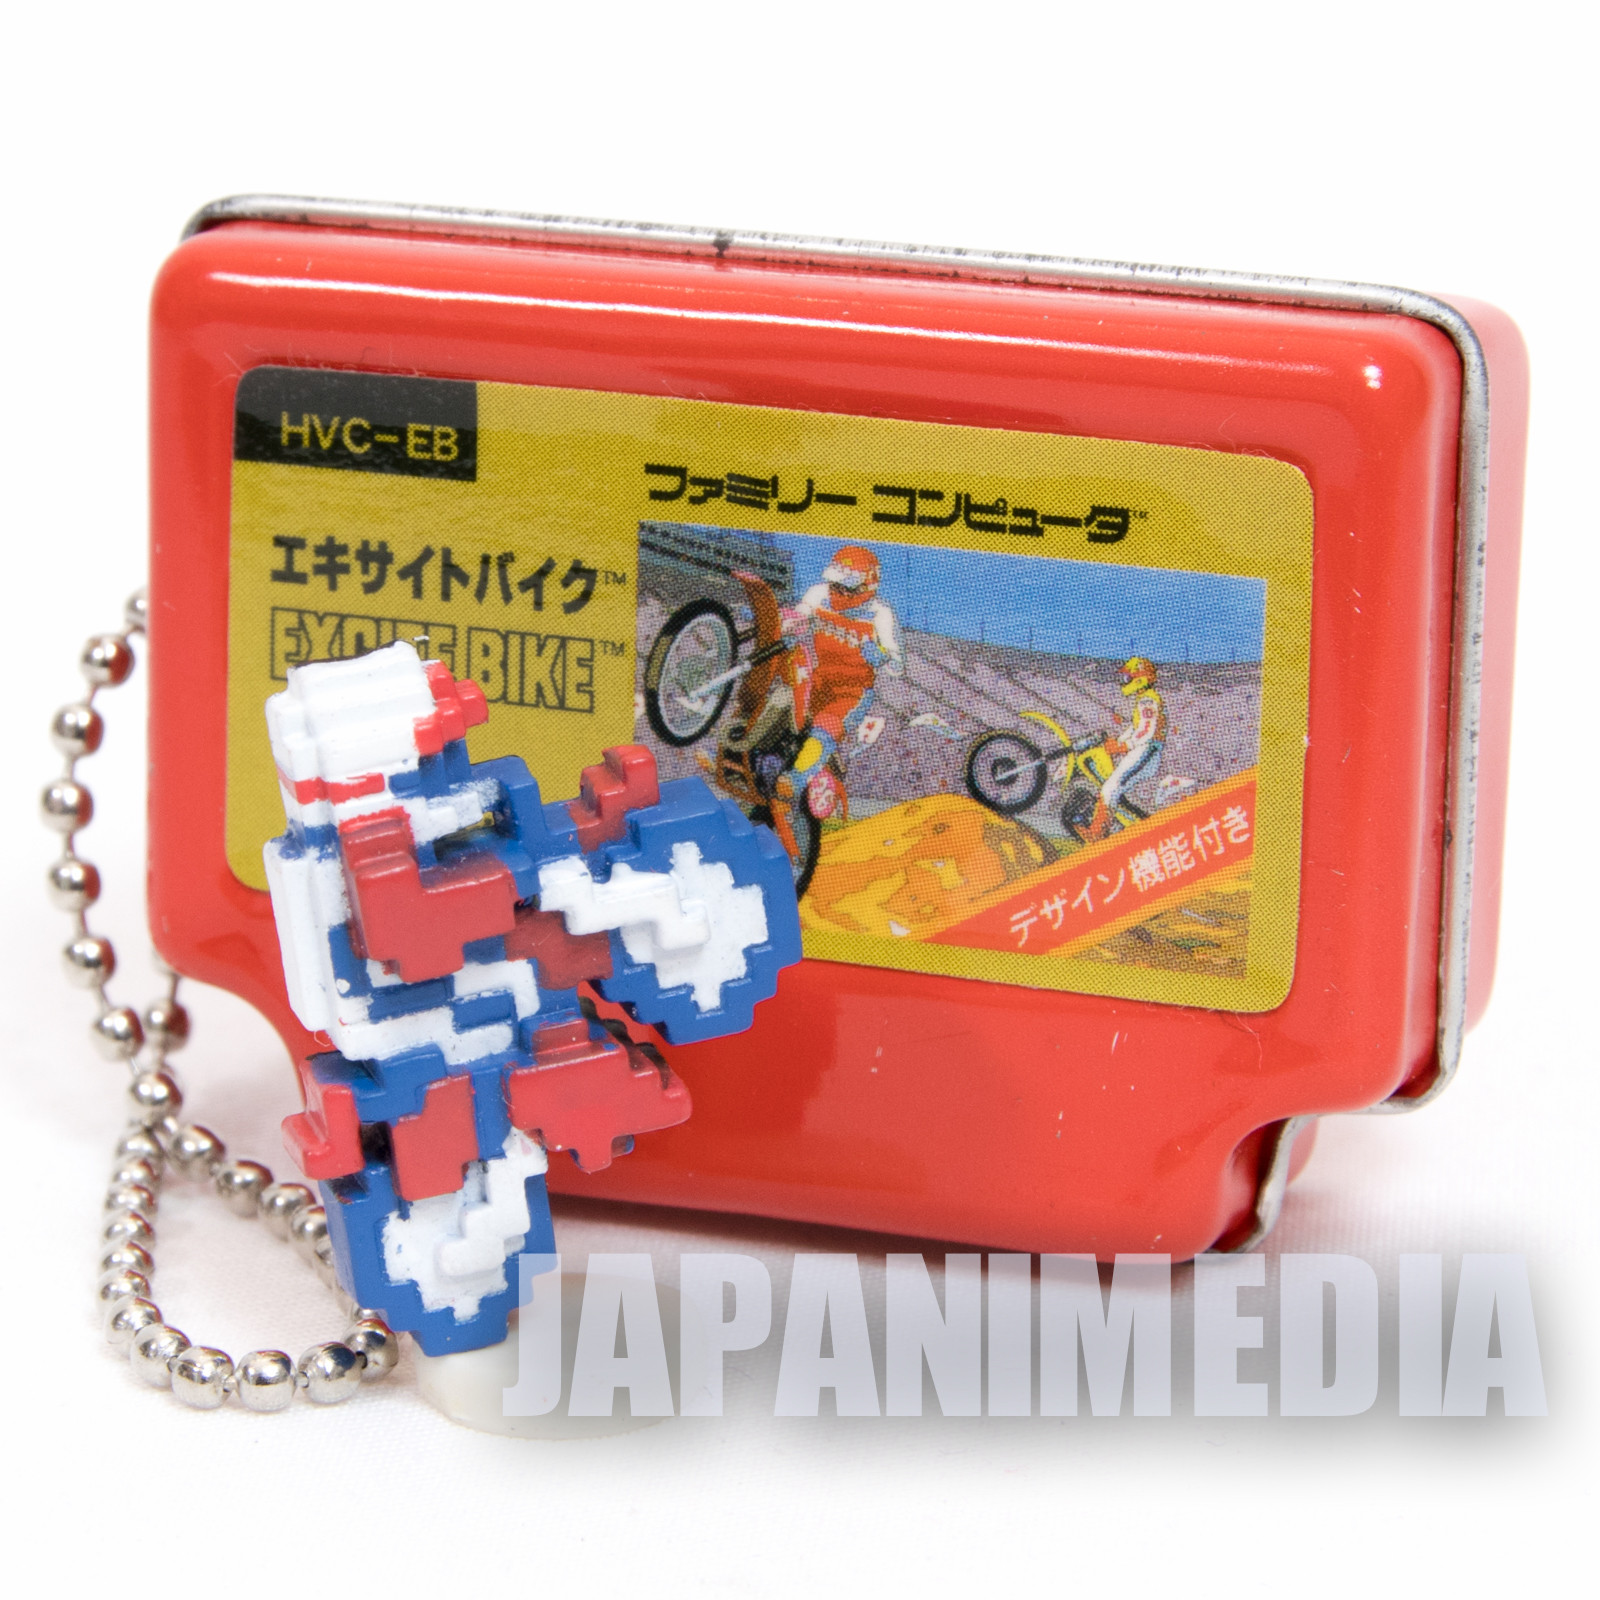 EXCITE BIKE Famicom Mini Can Case Keychain + Dot Figure Epoch JAPAN